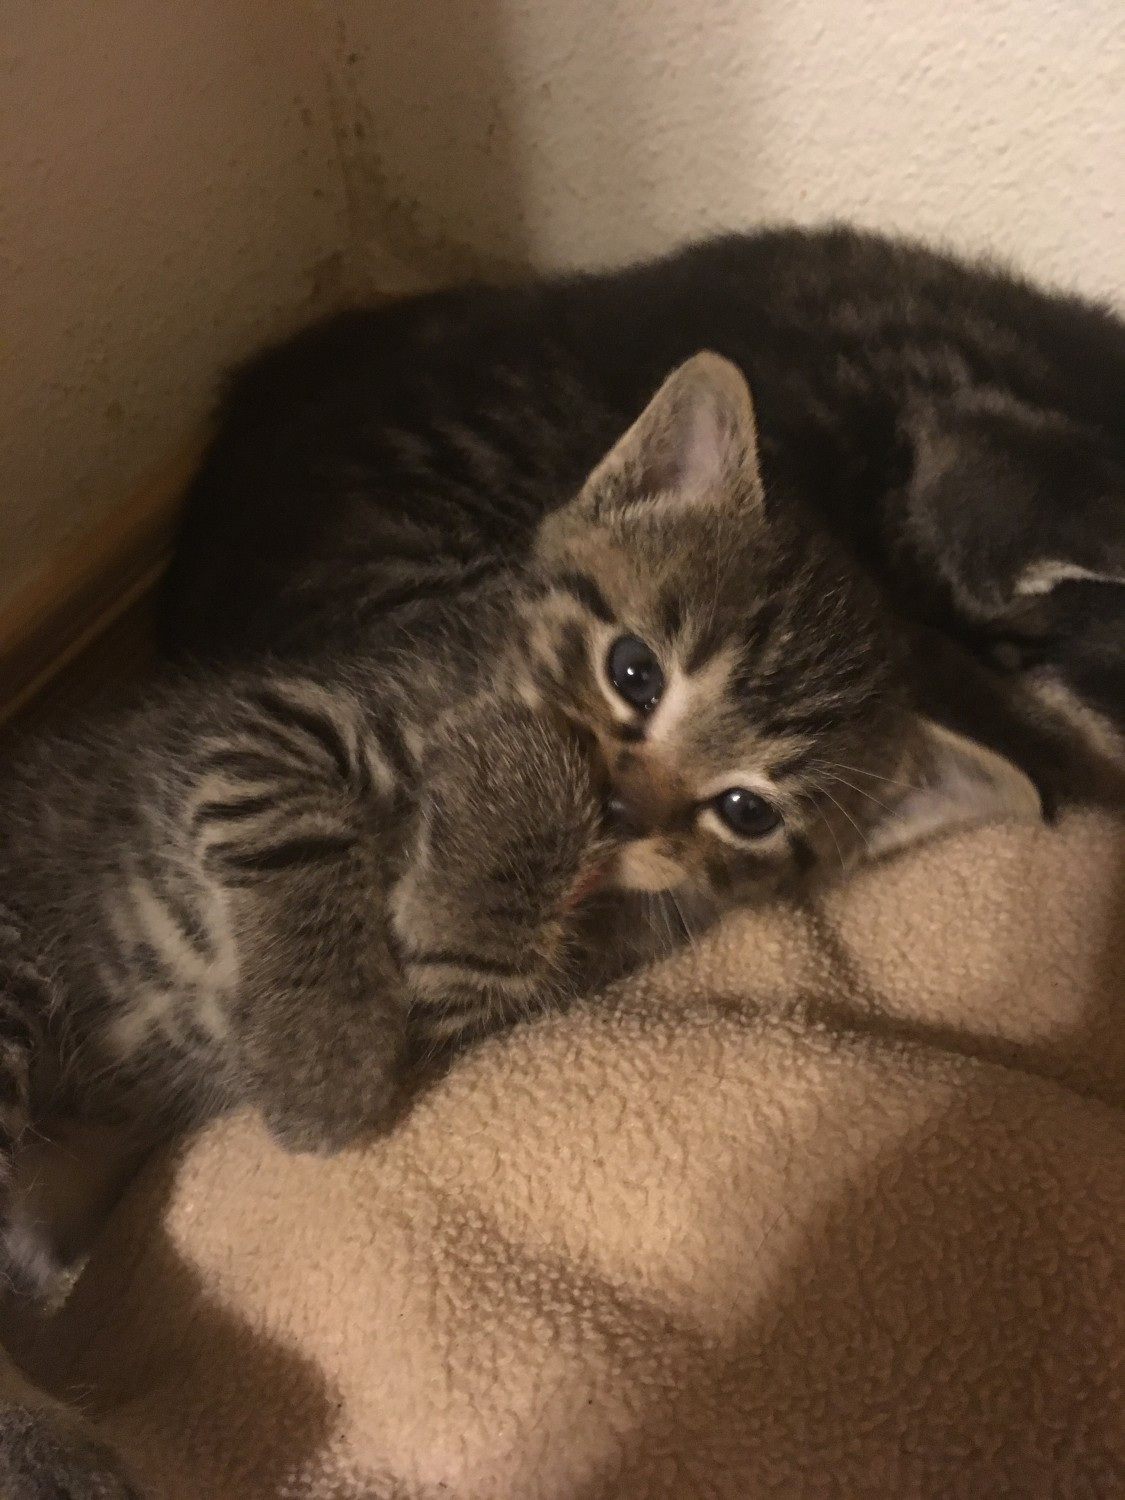 Tabby Cats For Sale Tacoma Wa 309240 Petzlover